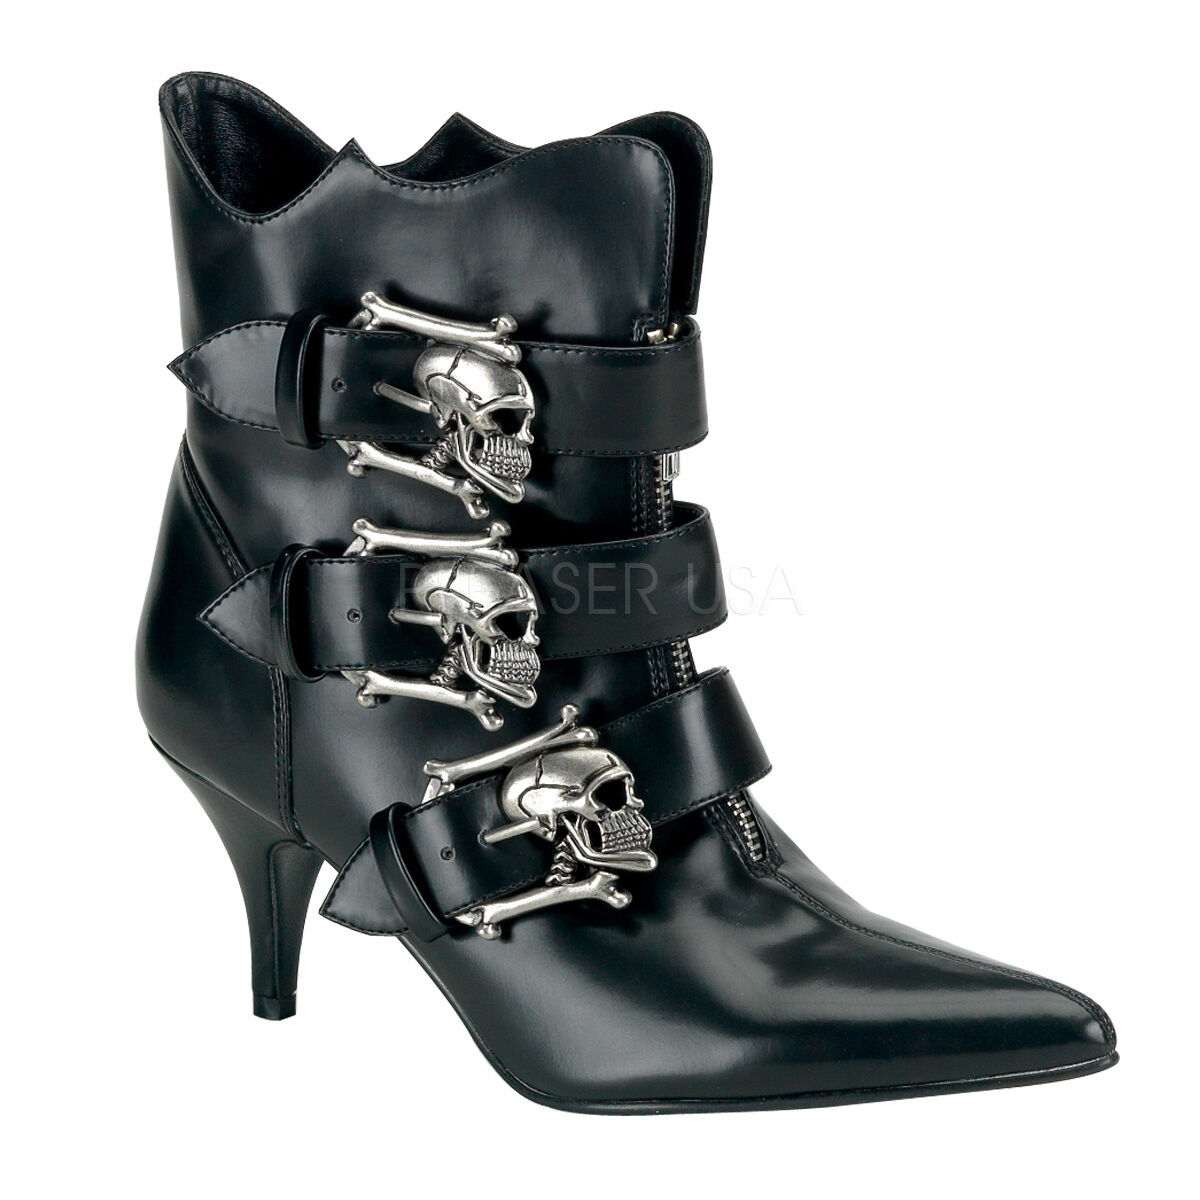 DEMONIA FURY-06 Sexy Black Skull Buckle Strap Low Heel Gothic Punk Ankle Boots